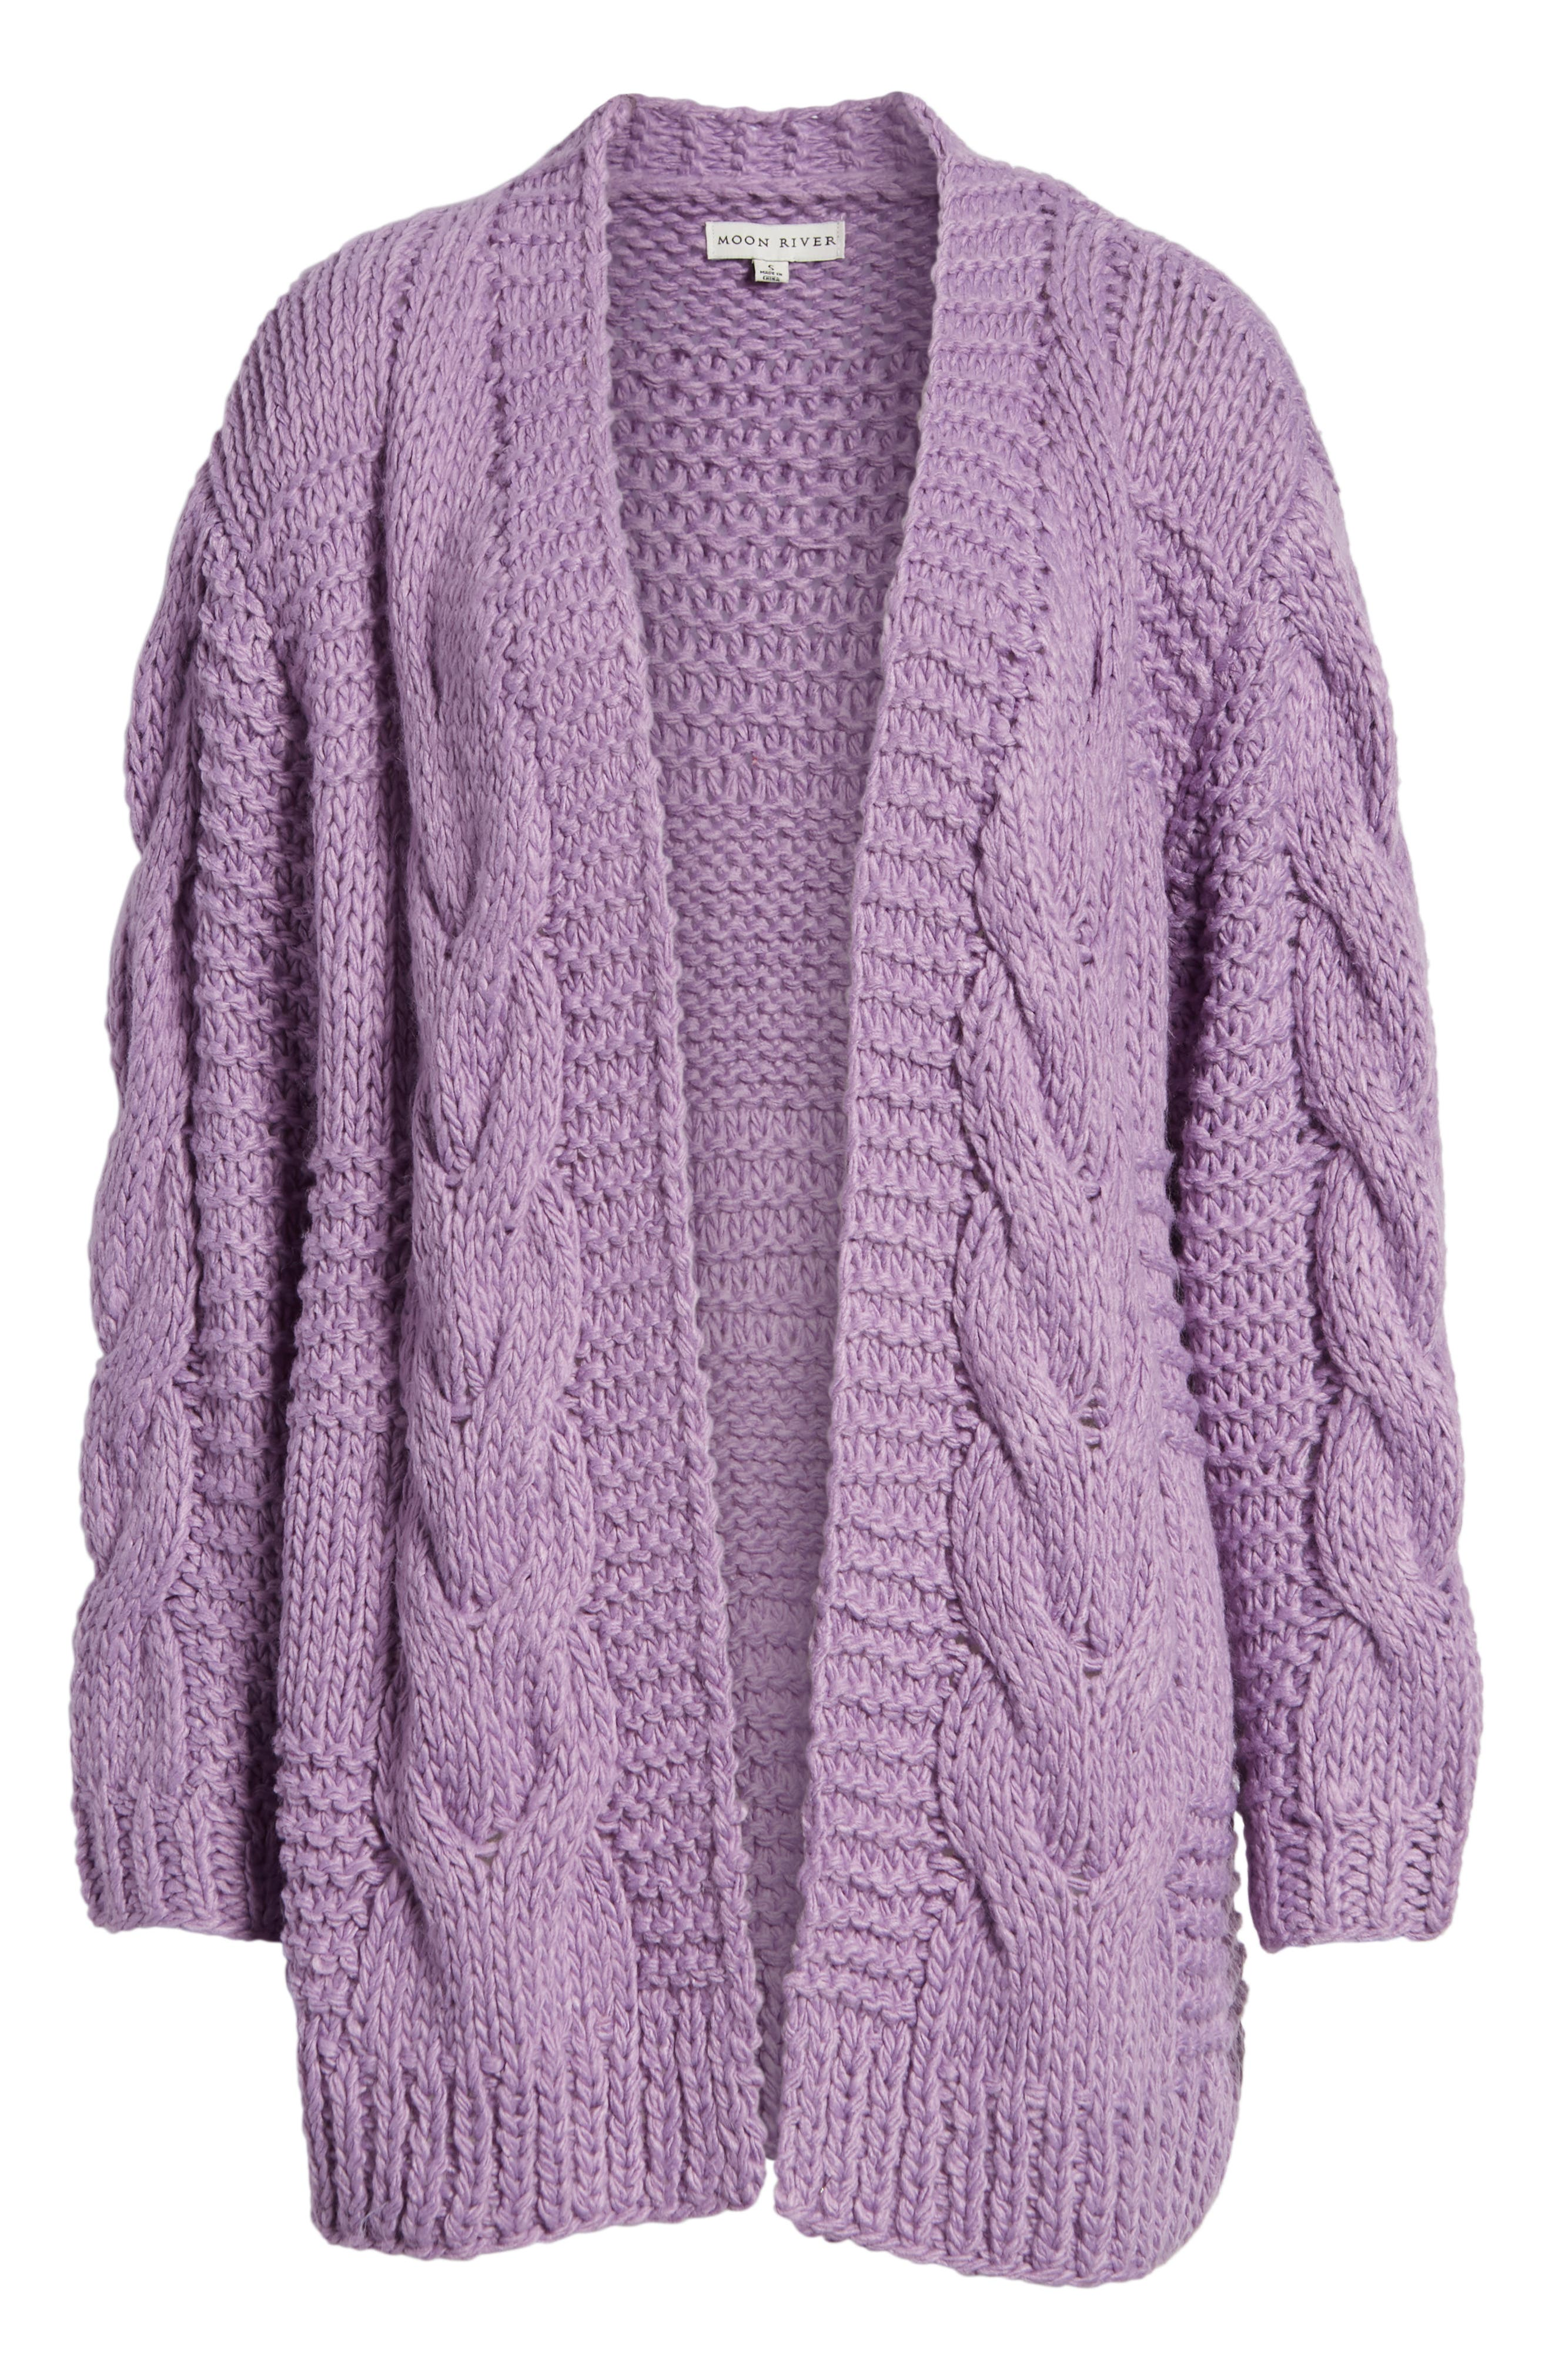 Cable Knit Oversized Cardigan,                             Alternate thumbnail 6, color,                             500